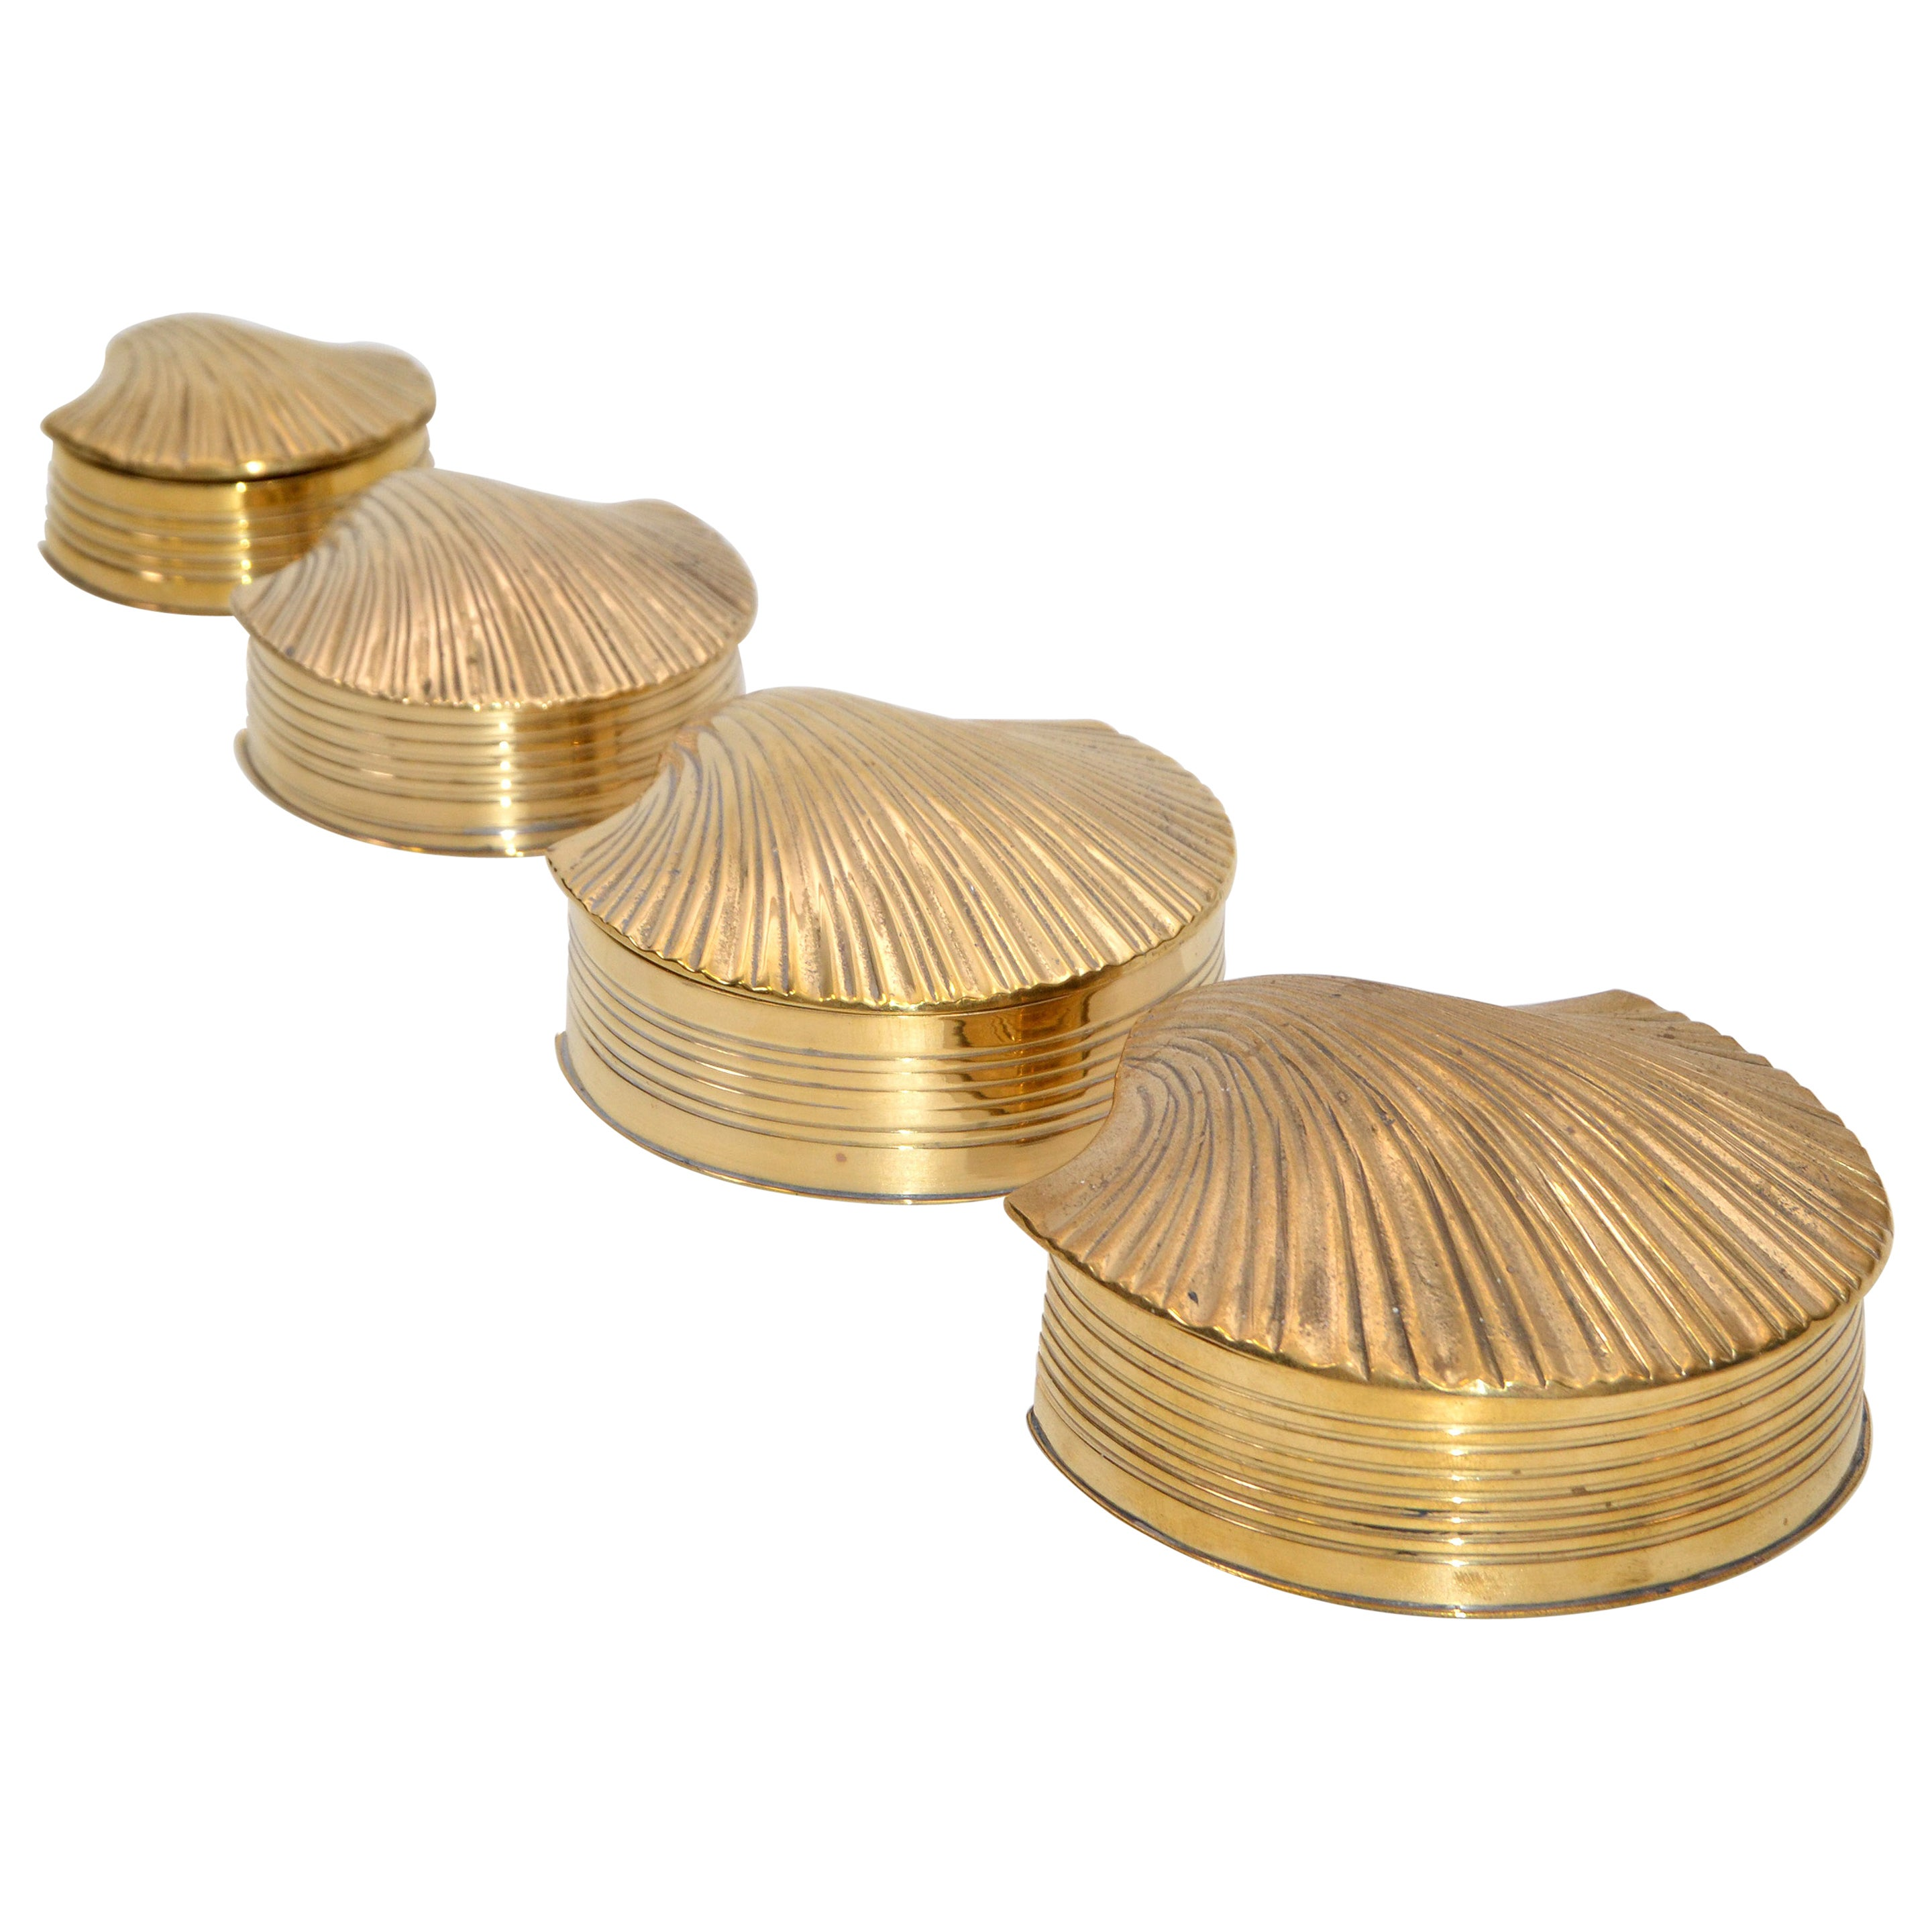 4 in 1 Nesting Vintage Brass Shell Scallop Shaped Trinket Boxes, Keepsakes 1970s